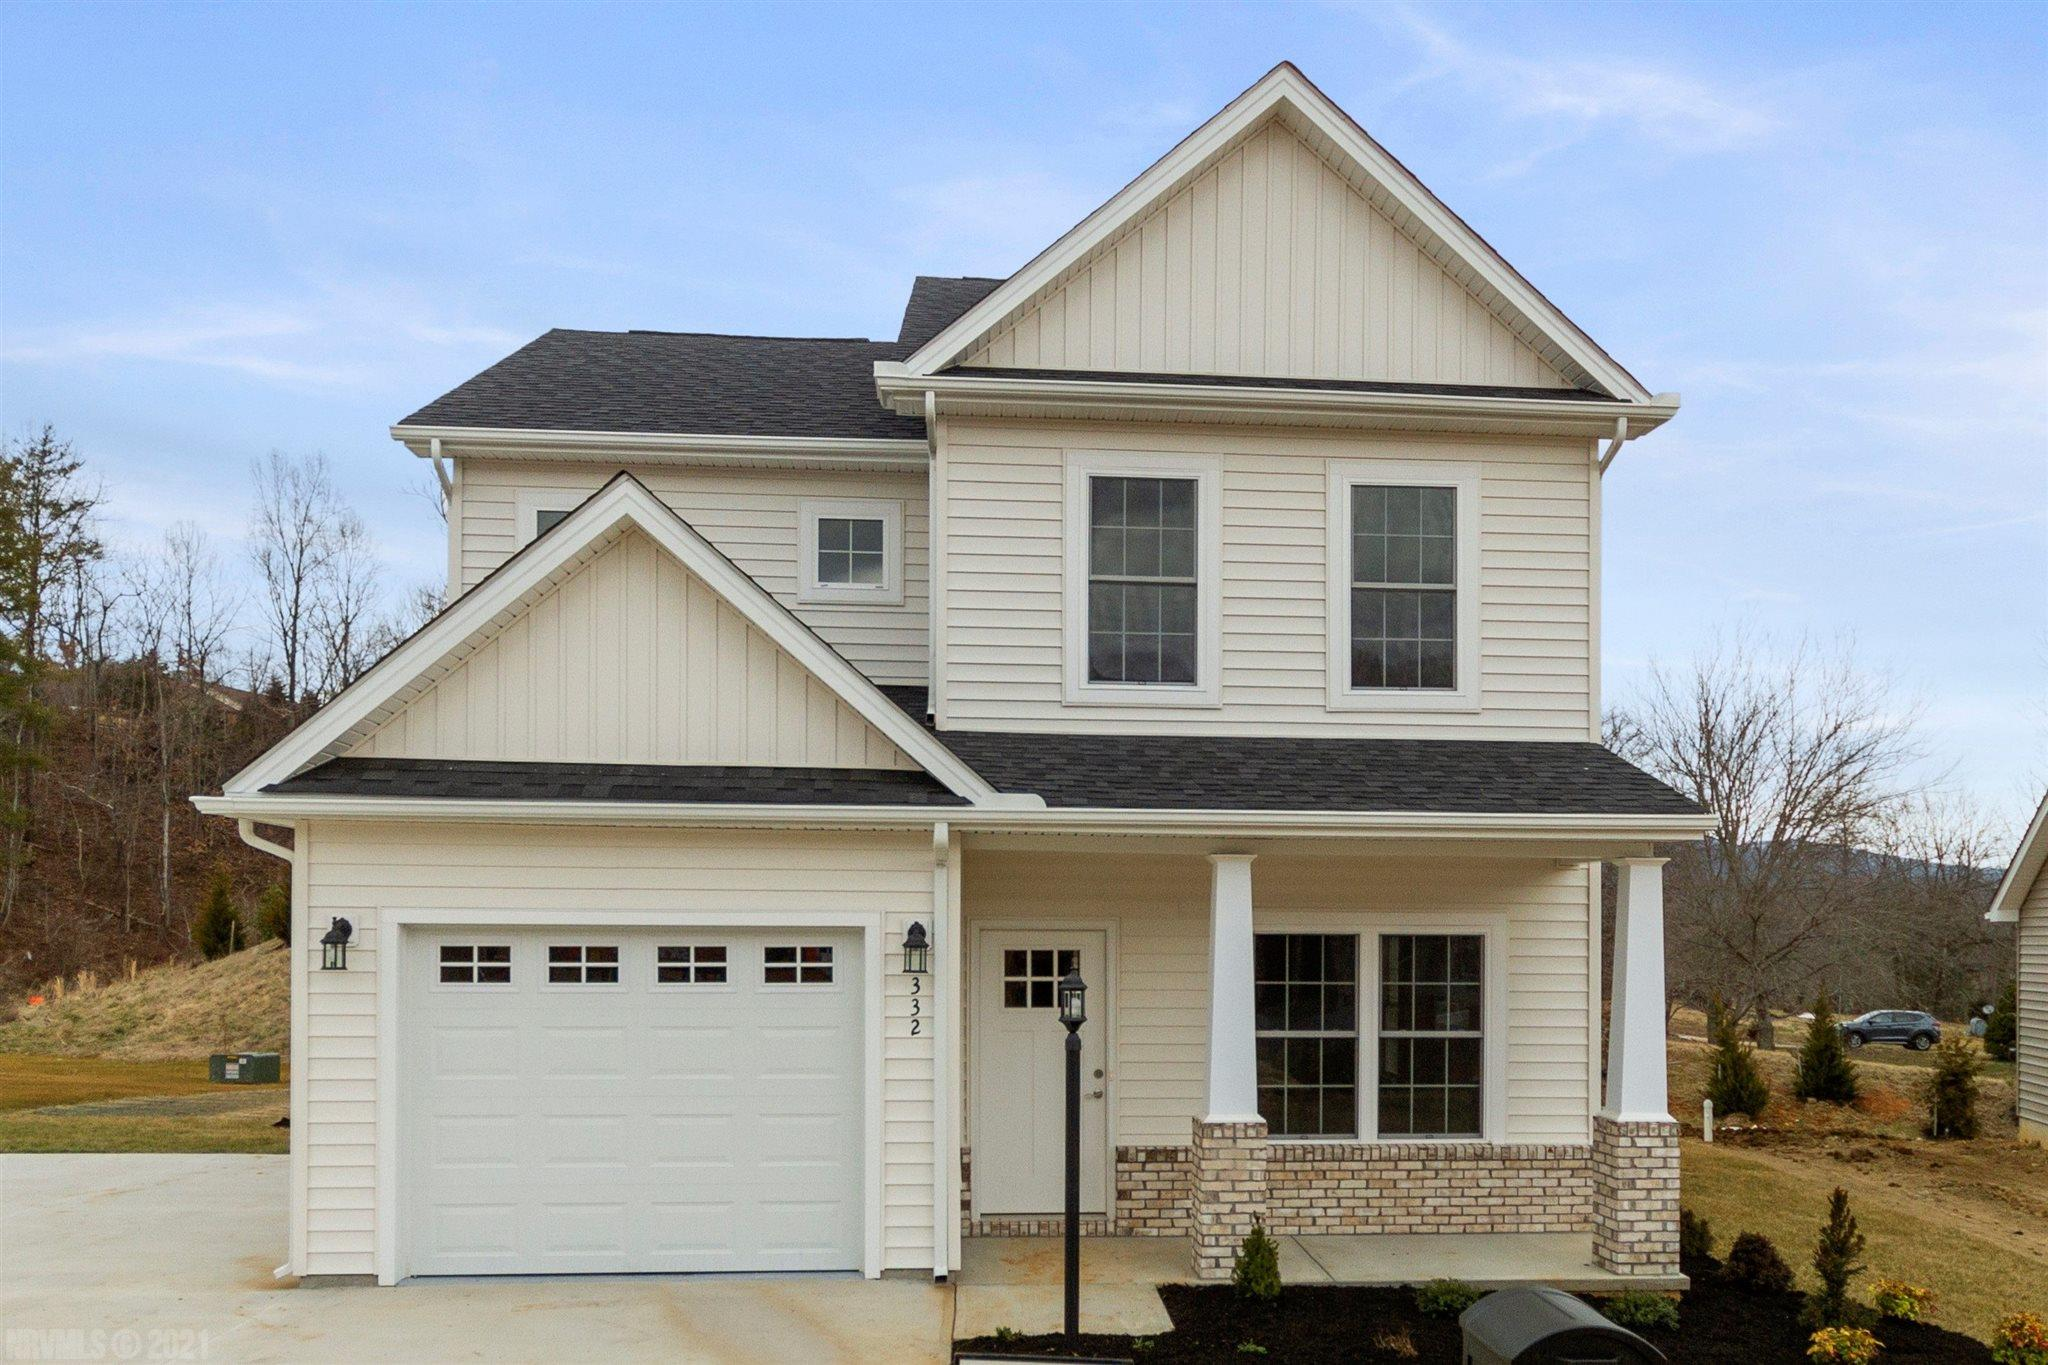 New Construction. 4 Bedroom 2.5 bath home with Single car attached garage. Granite Counter tops through out. LTV Plank in living room/dining area, powder room and kitchen. Carpet in Bedrooms. Laundry room upper level with mechanical room and storage. Monthly HOA fee is $50.00. All photo's are stock photo's.  No Sheetrock in this house yet.